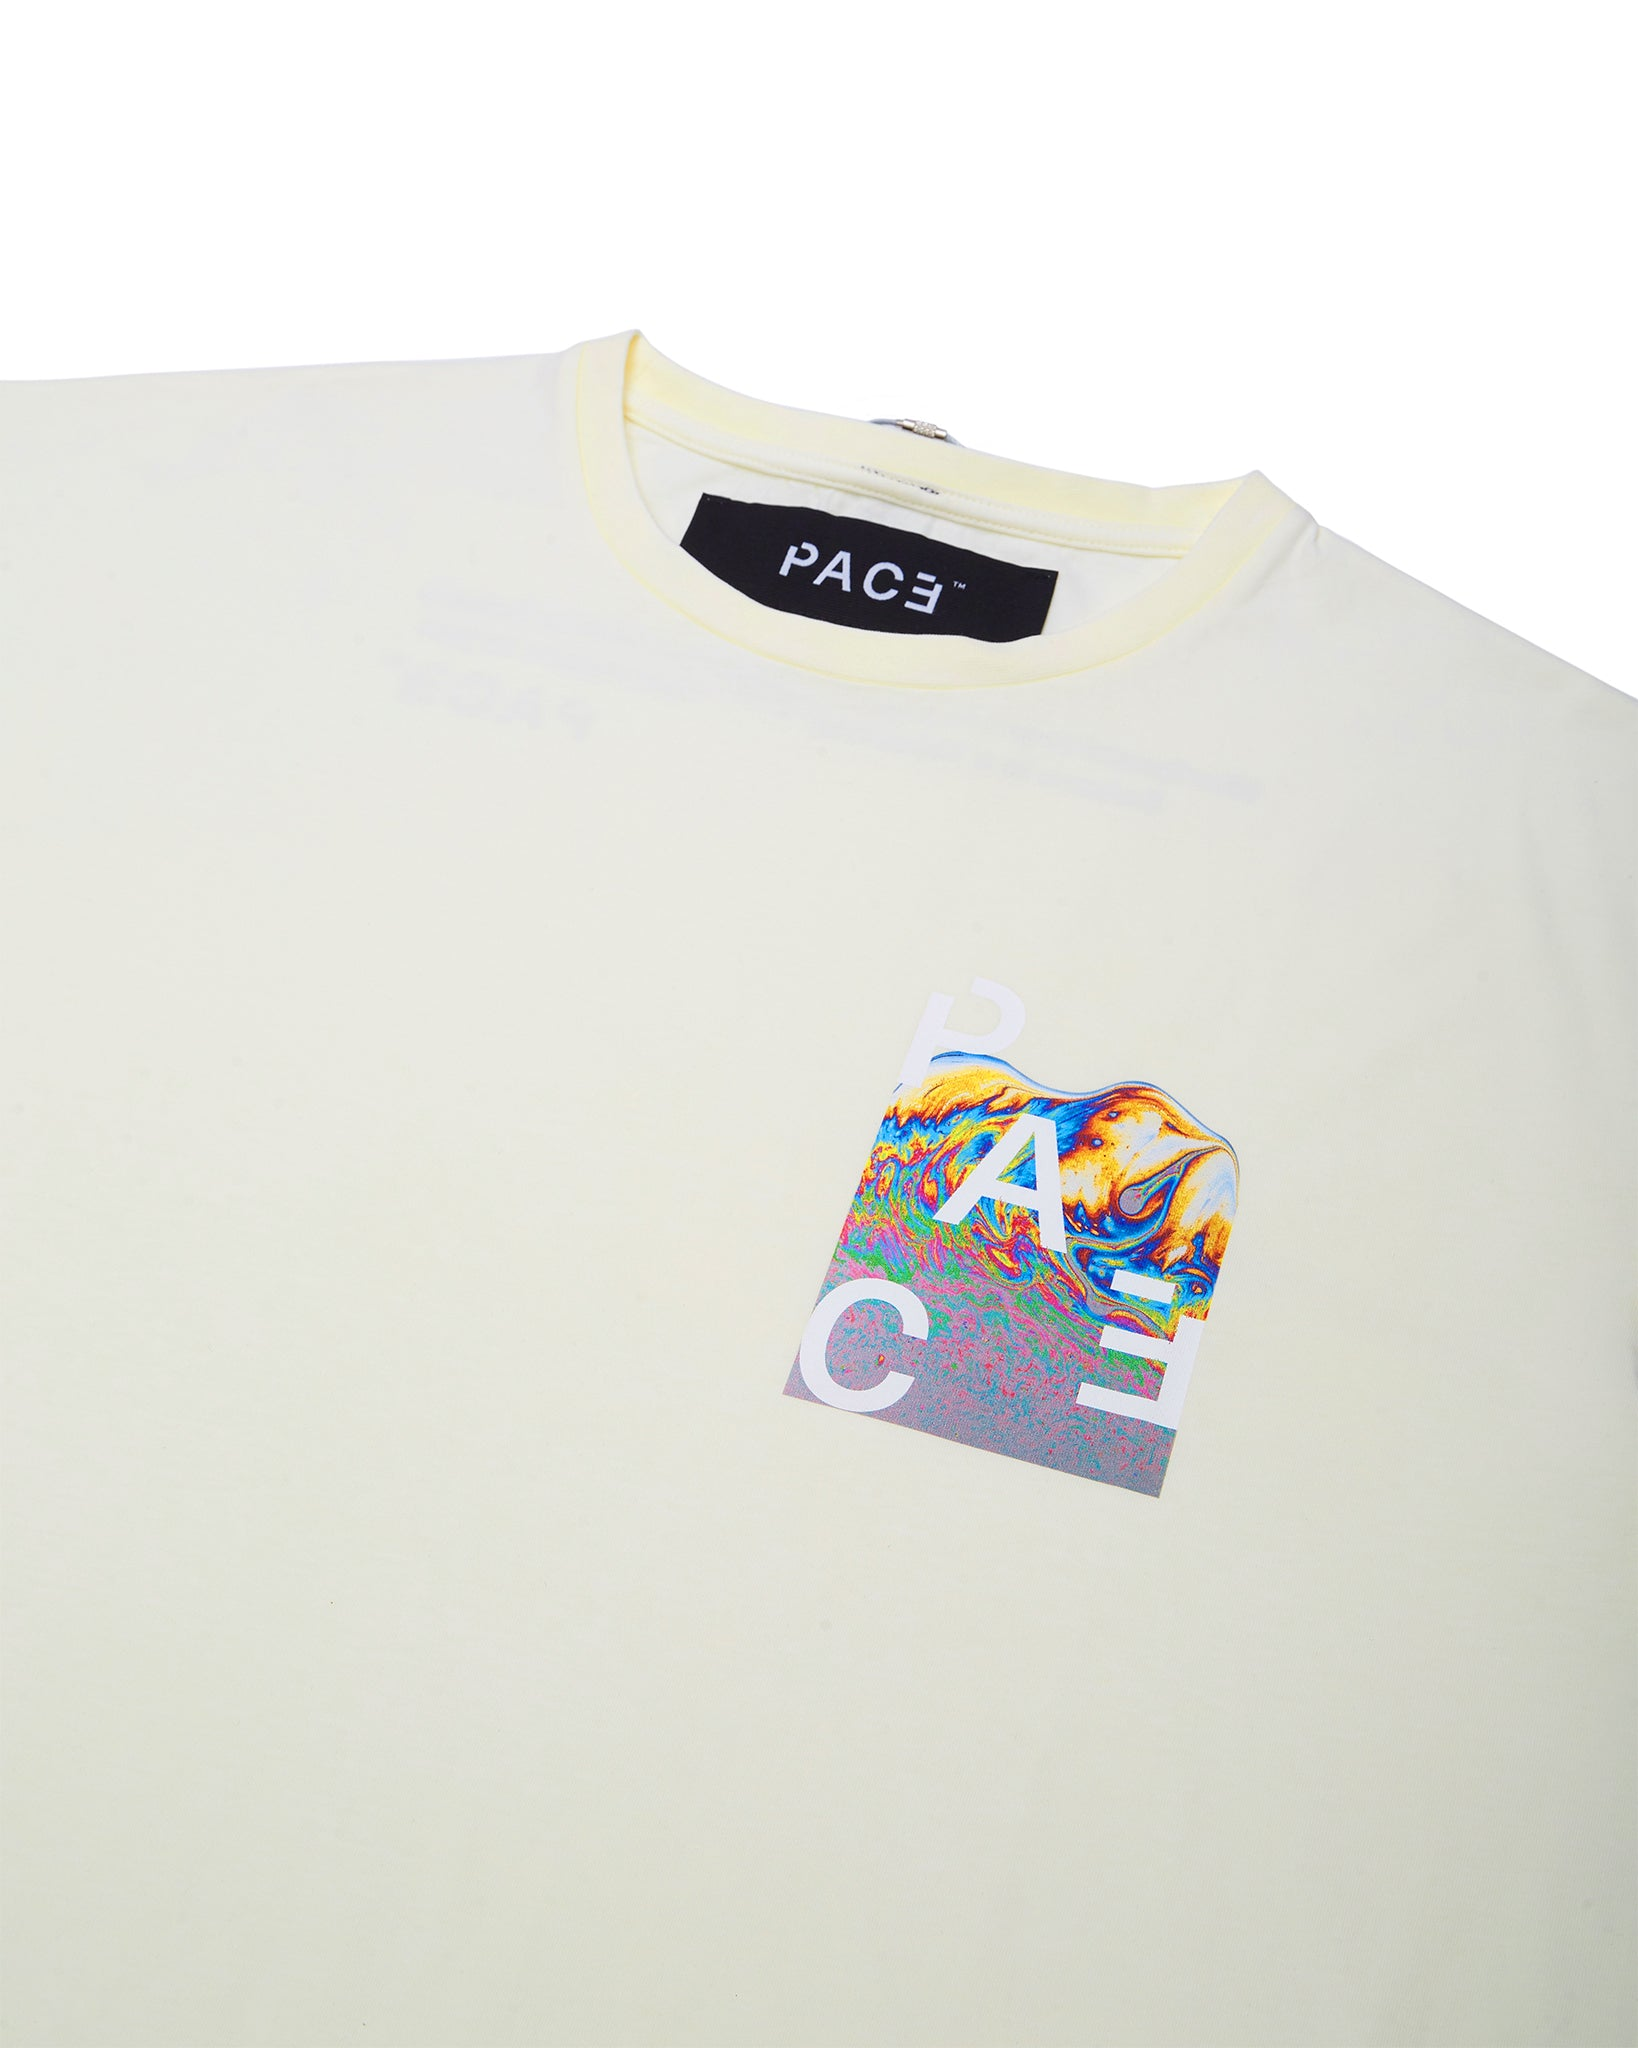 MRBSH2 T-SHIRT OFF WHITE PACE ™ (camiseta off white com arte no lado esquerdo frente)